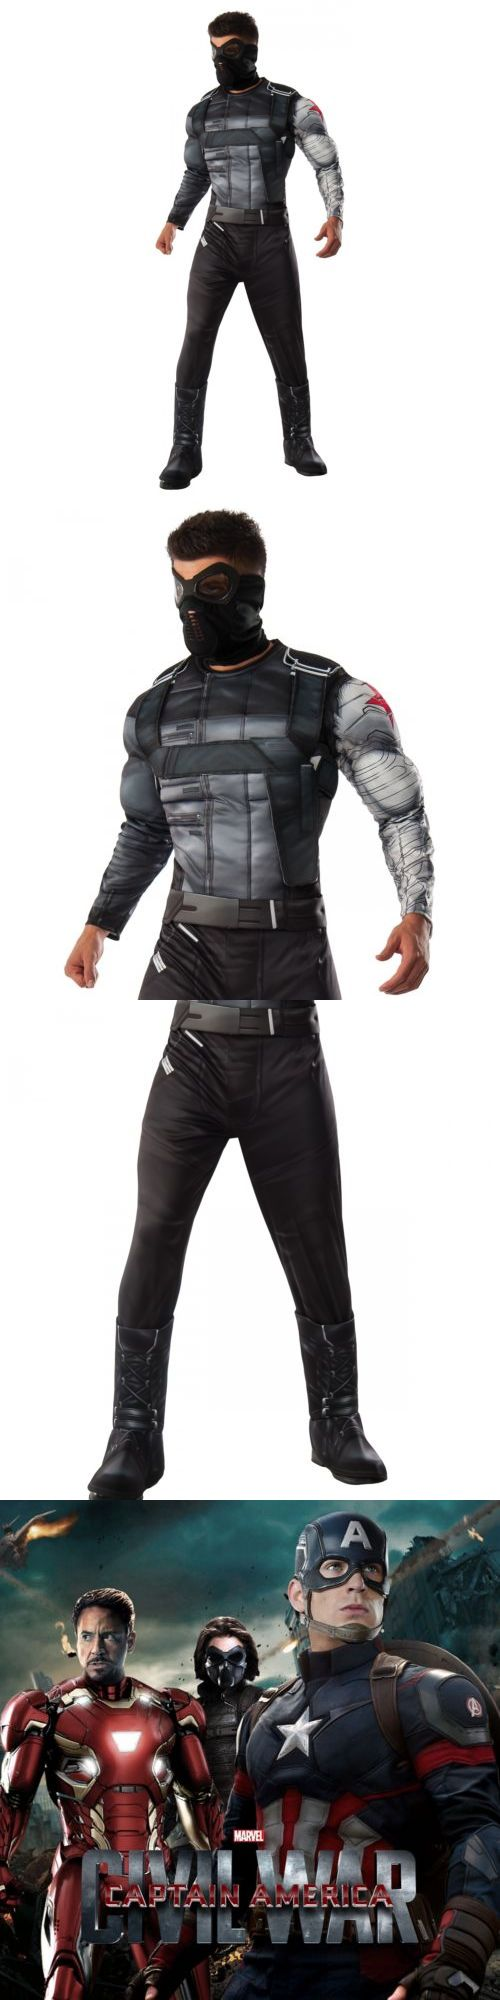 Men Costumes: Winter Soldier Costume Adult Halloween Fancy Dress -> BUY IT NOW ONLY: $43.39 on eBay!